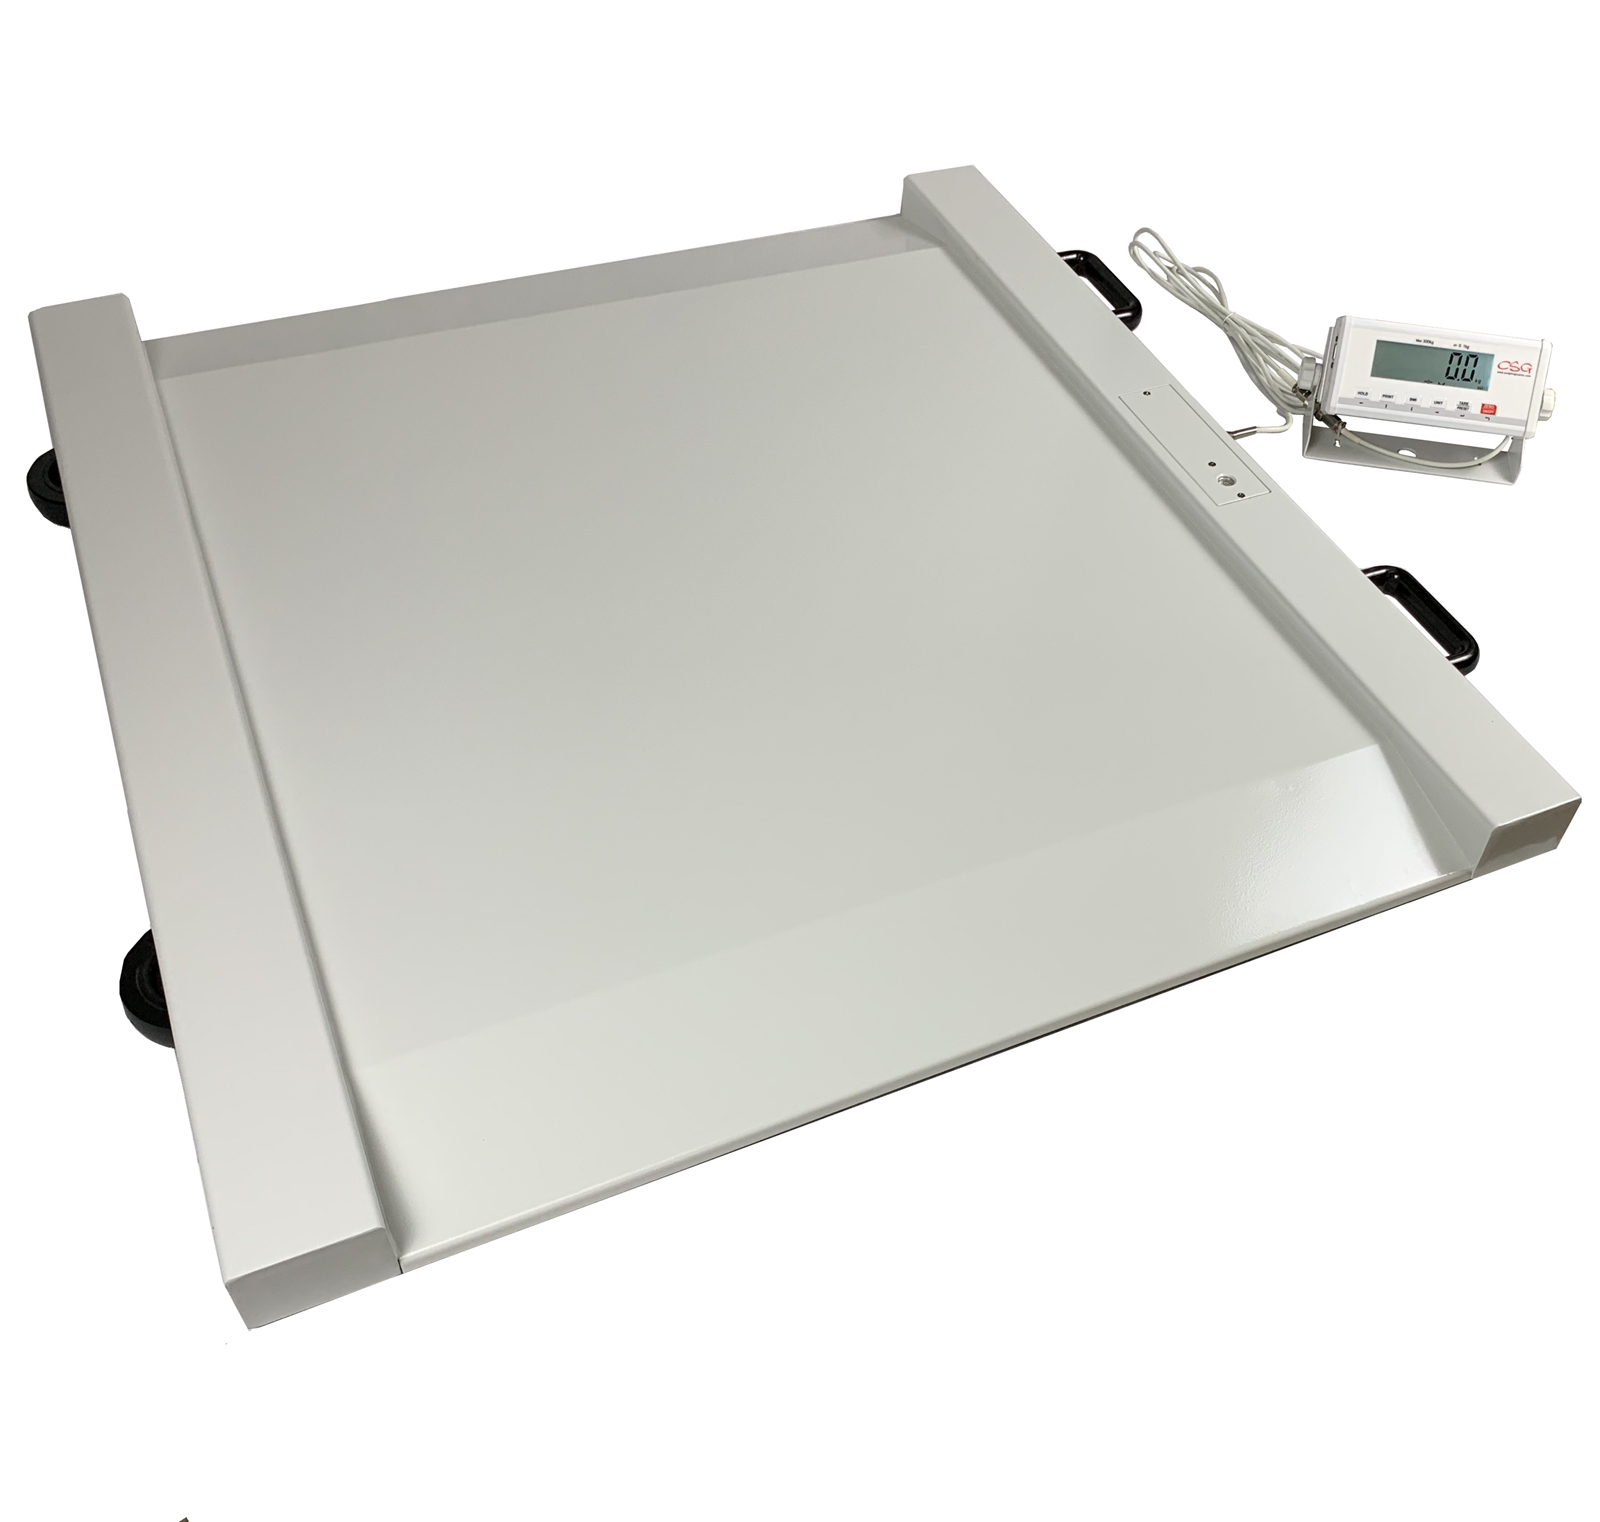 CSG EH-MH WHEELCHAIR SCALE | weighingscales.com